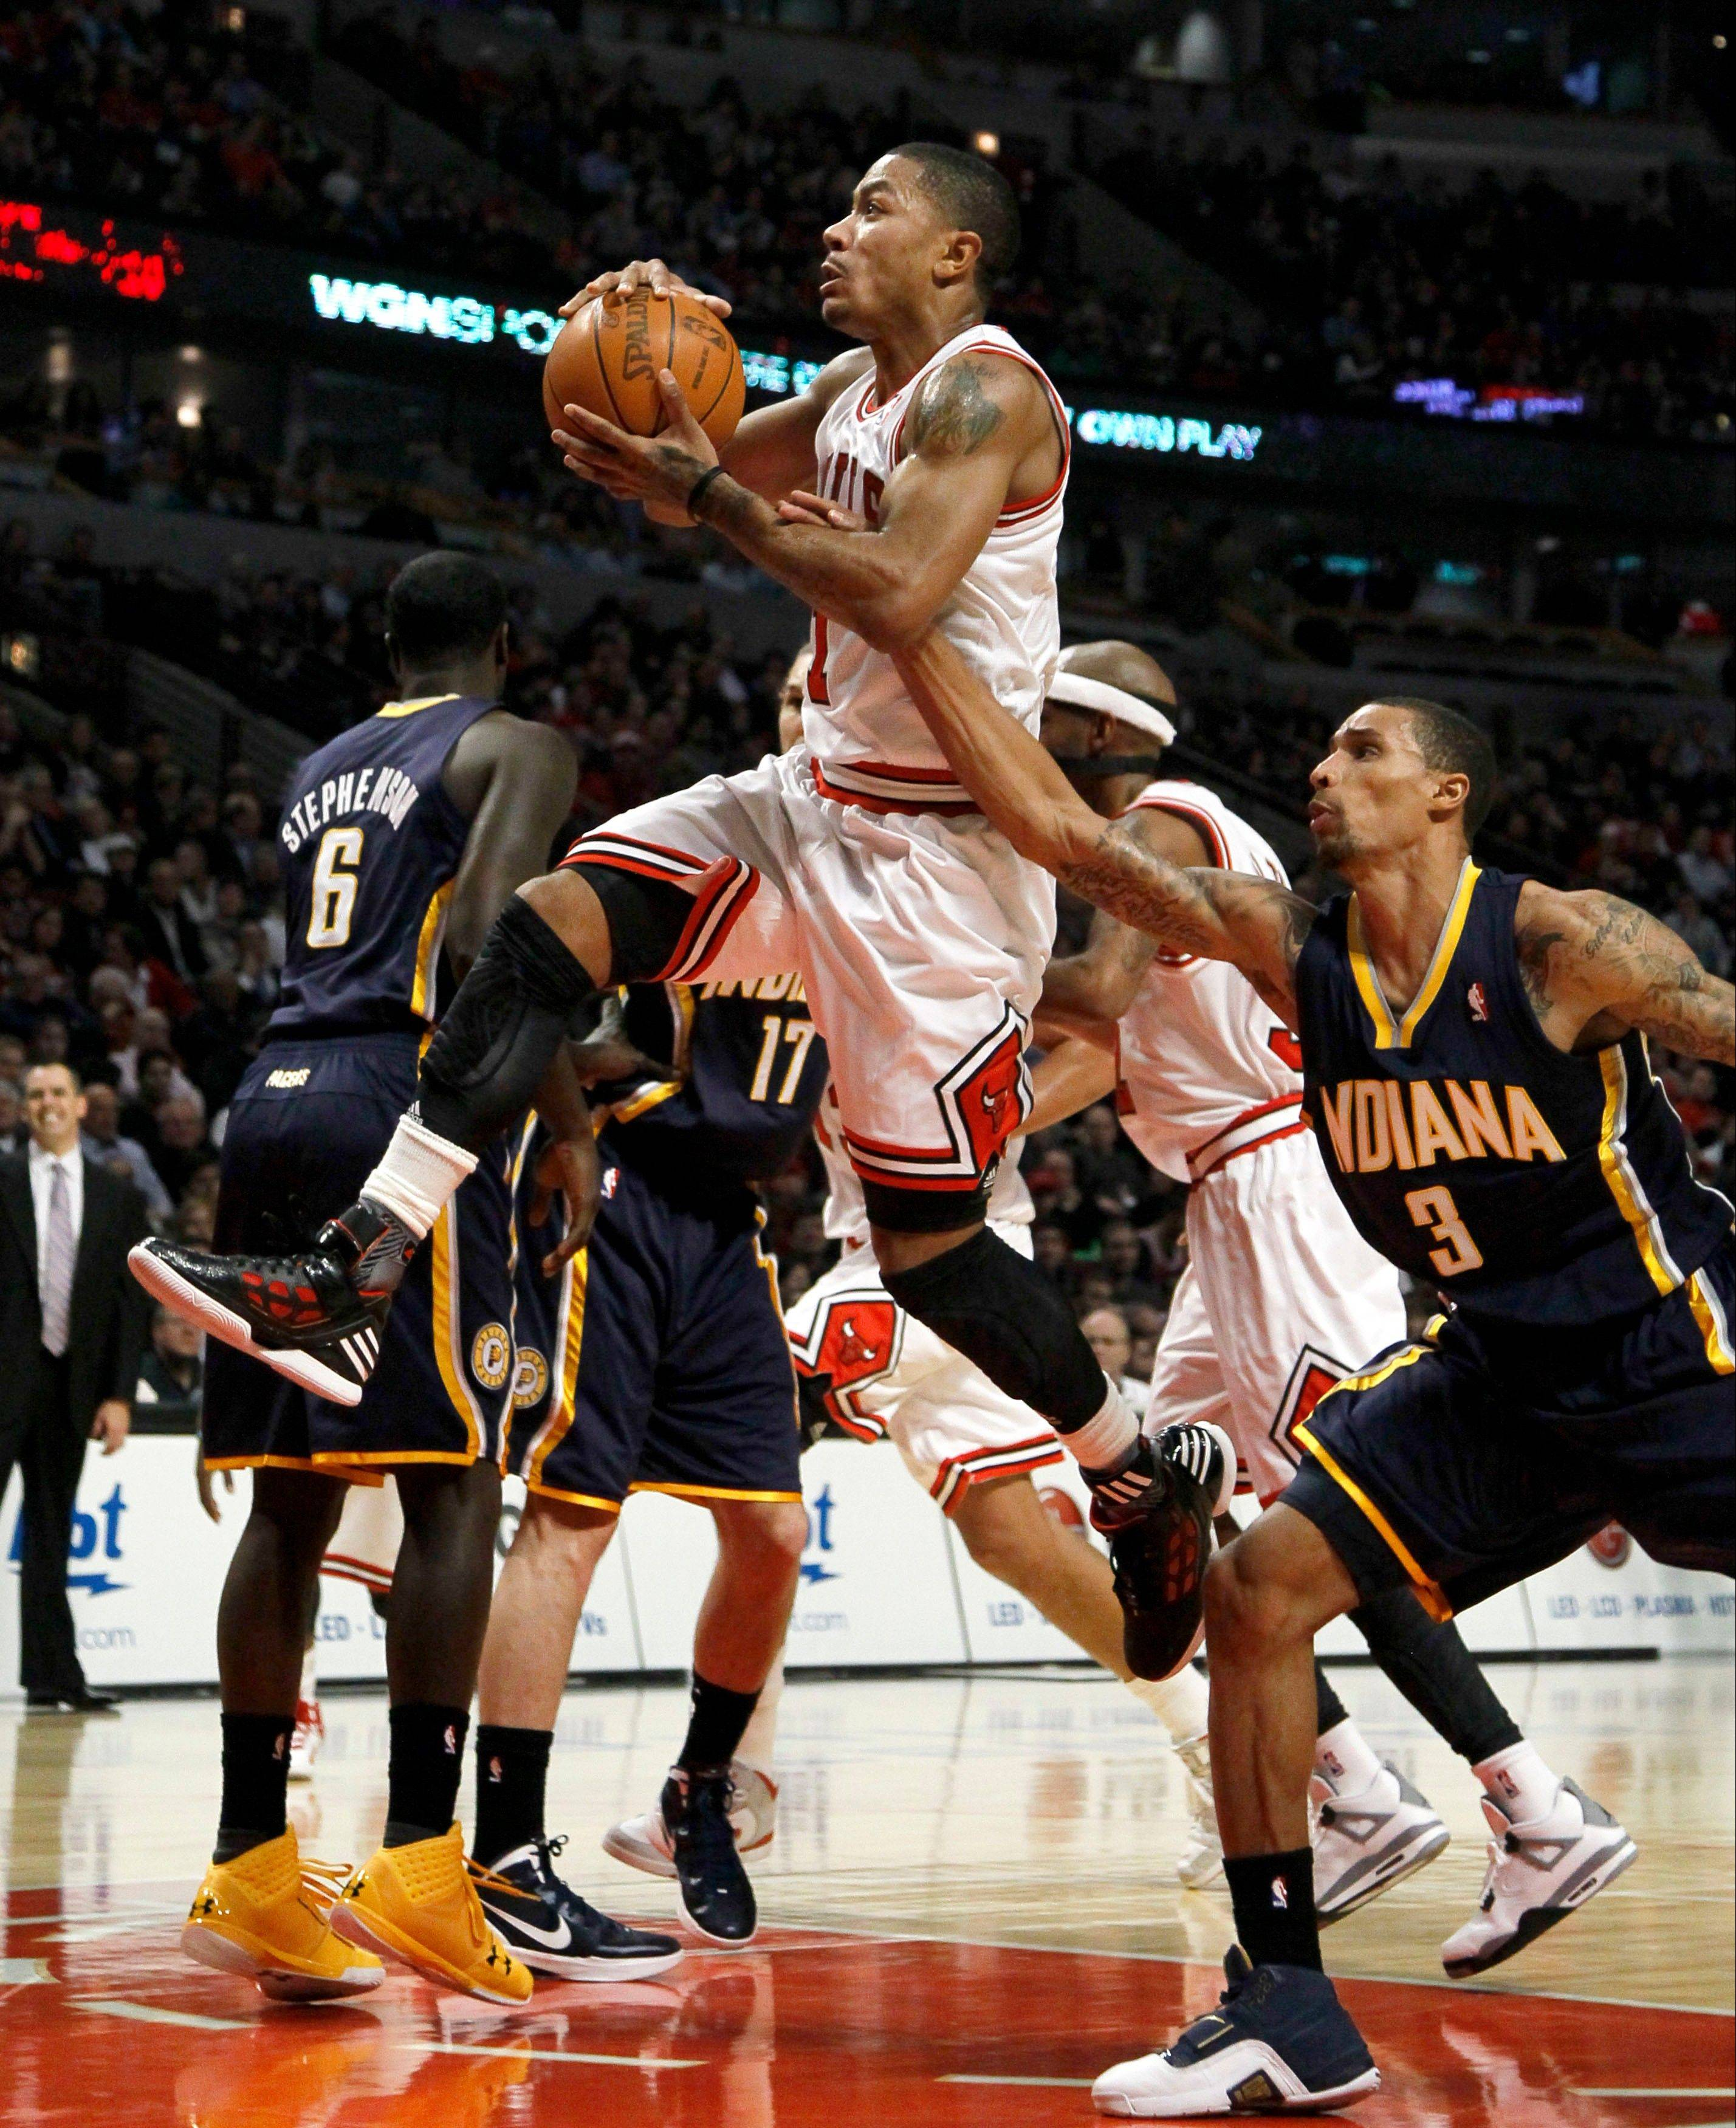 The Bulls' Derrick Rose drives and scores past Indiana Pacers shooting guard George Hill, right, during the first half Wednesday at the United Center.